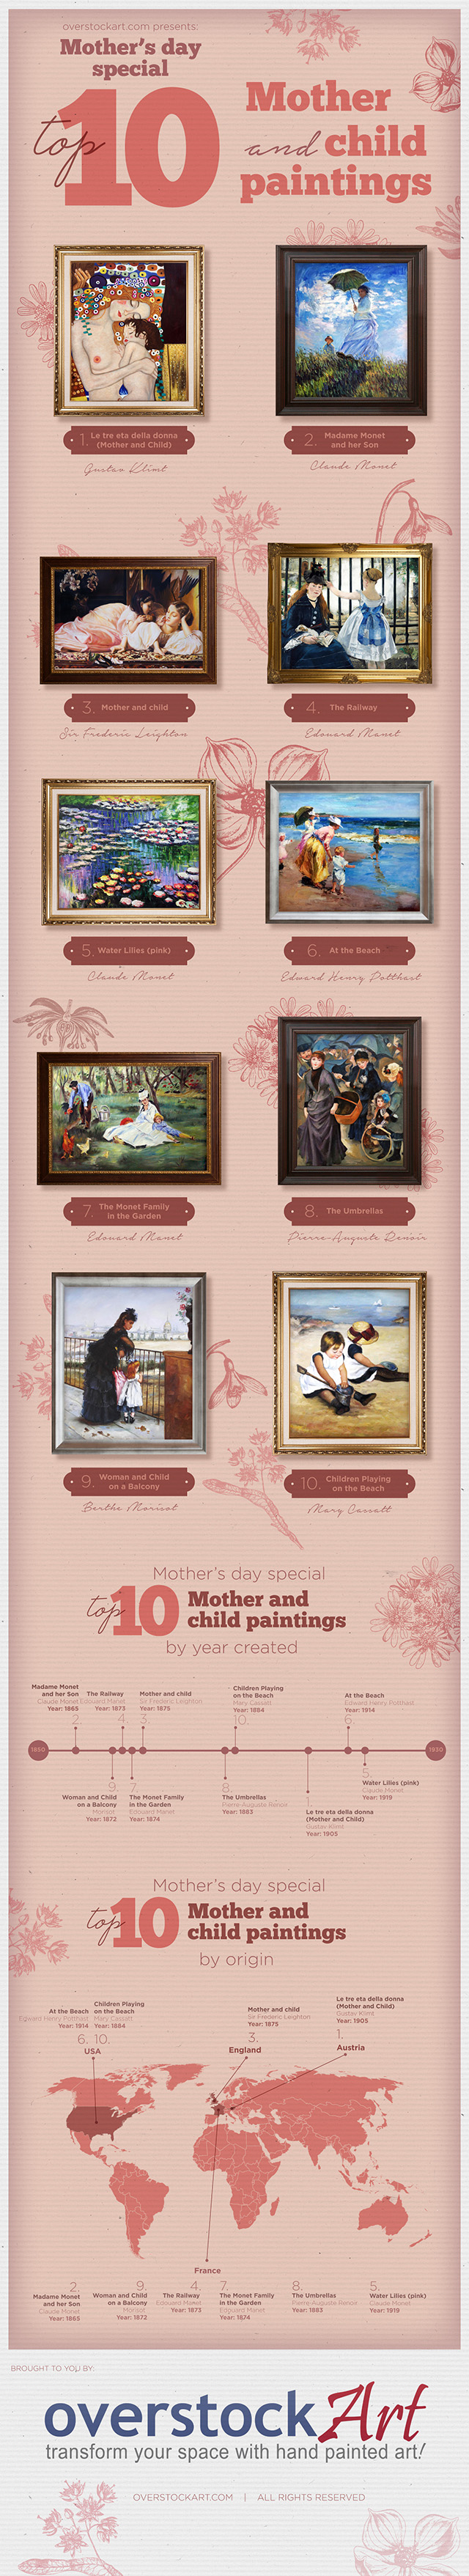 Mother's Day 2015 Top 10 Art List